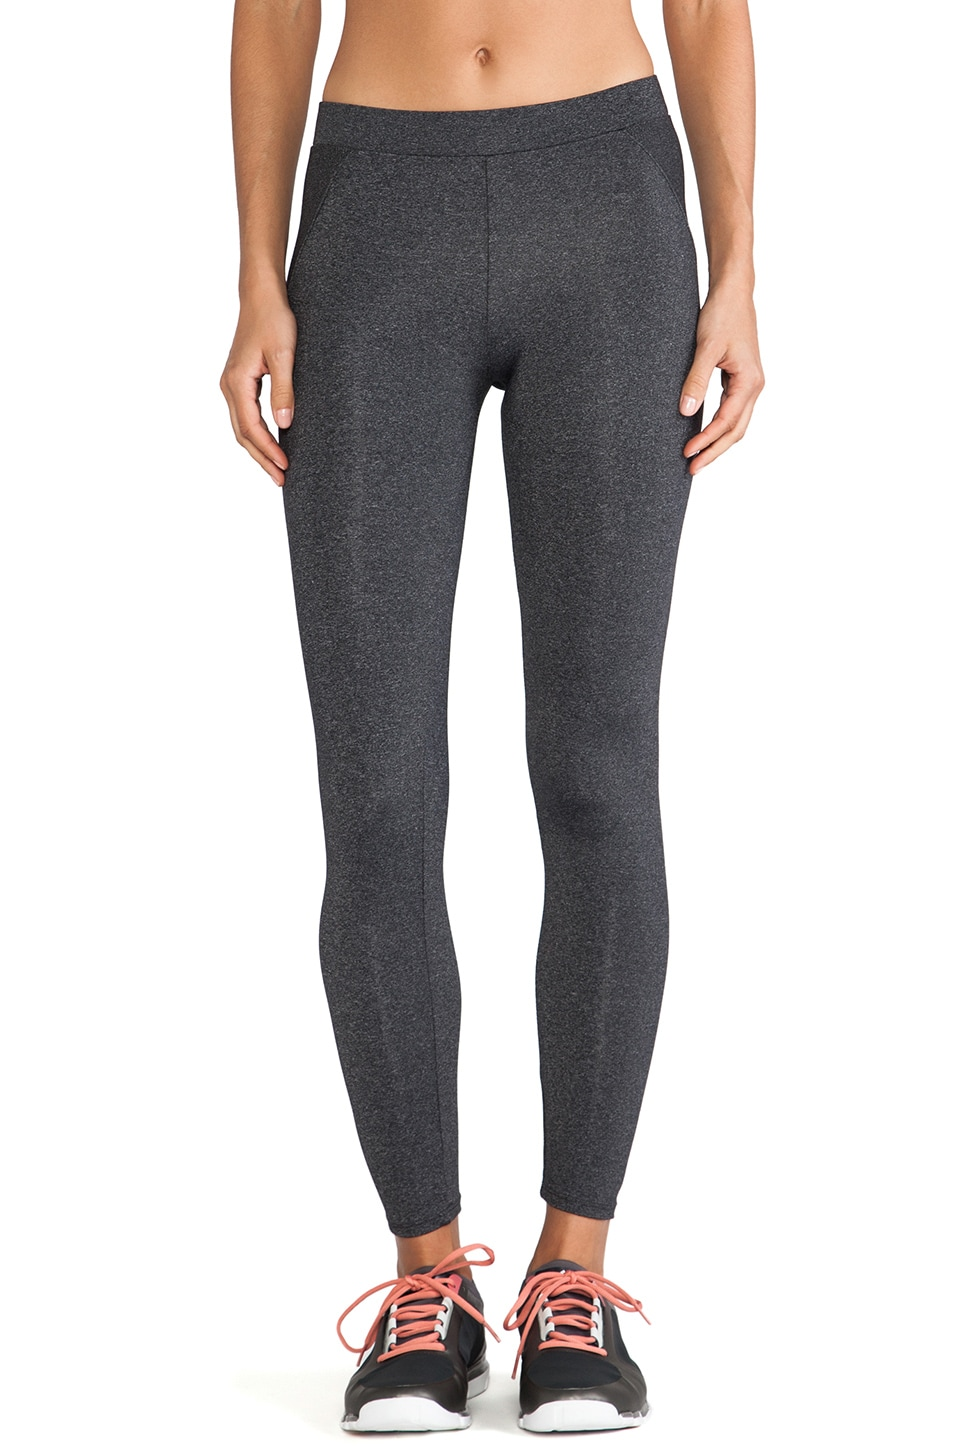 SOLOW Legging in Heather Charcoal